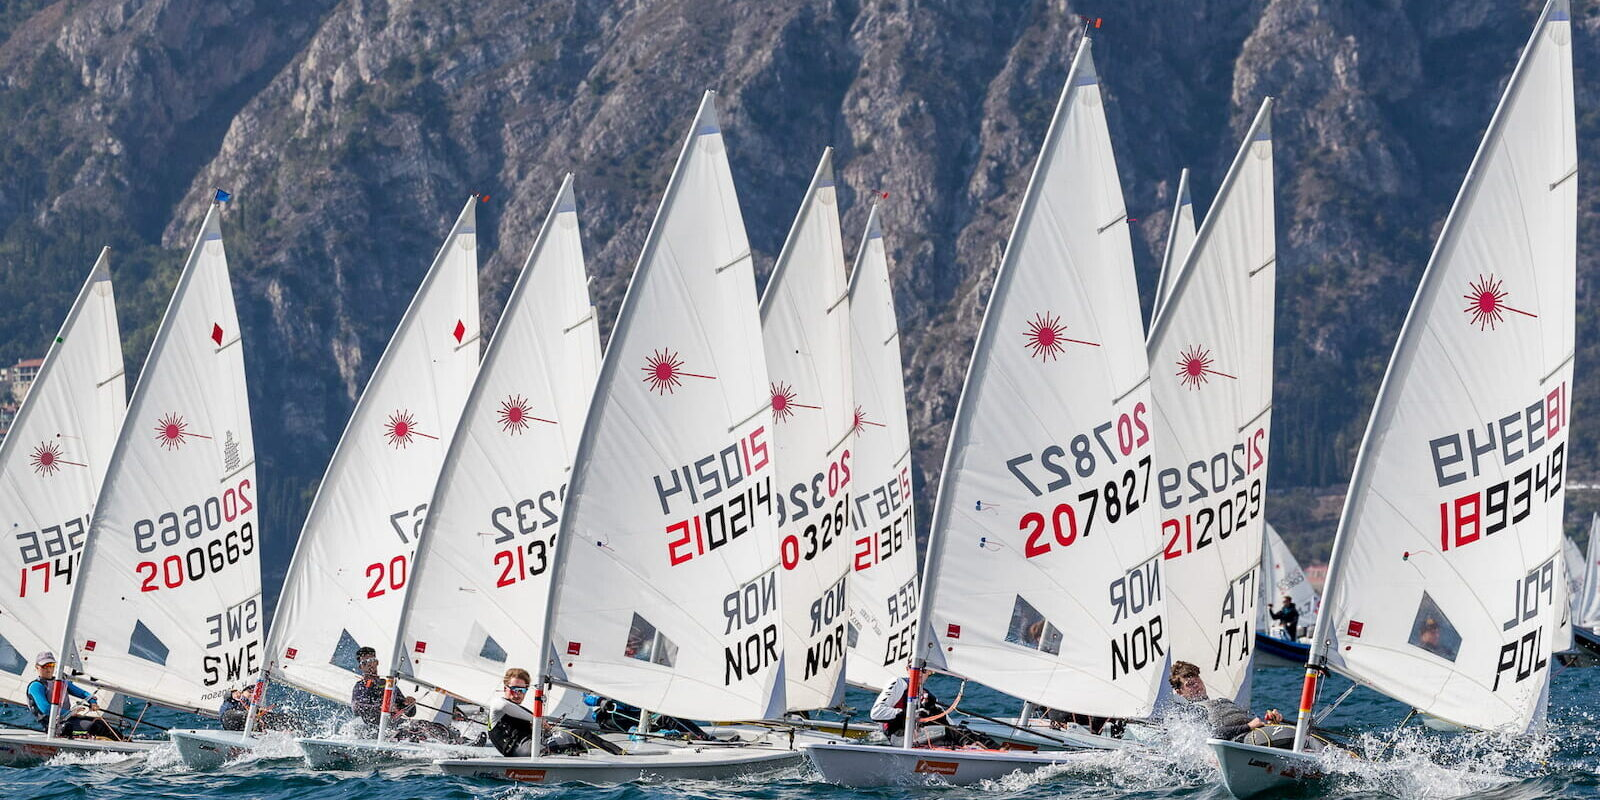 Laser Youth Easter Meeting 2019 Fraglia Vela Malcesine Angela Trawoeger K3I1735